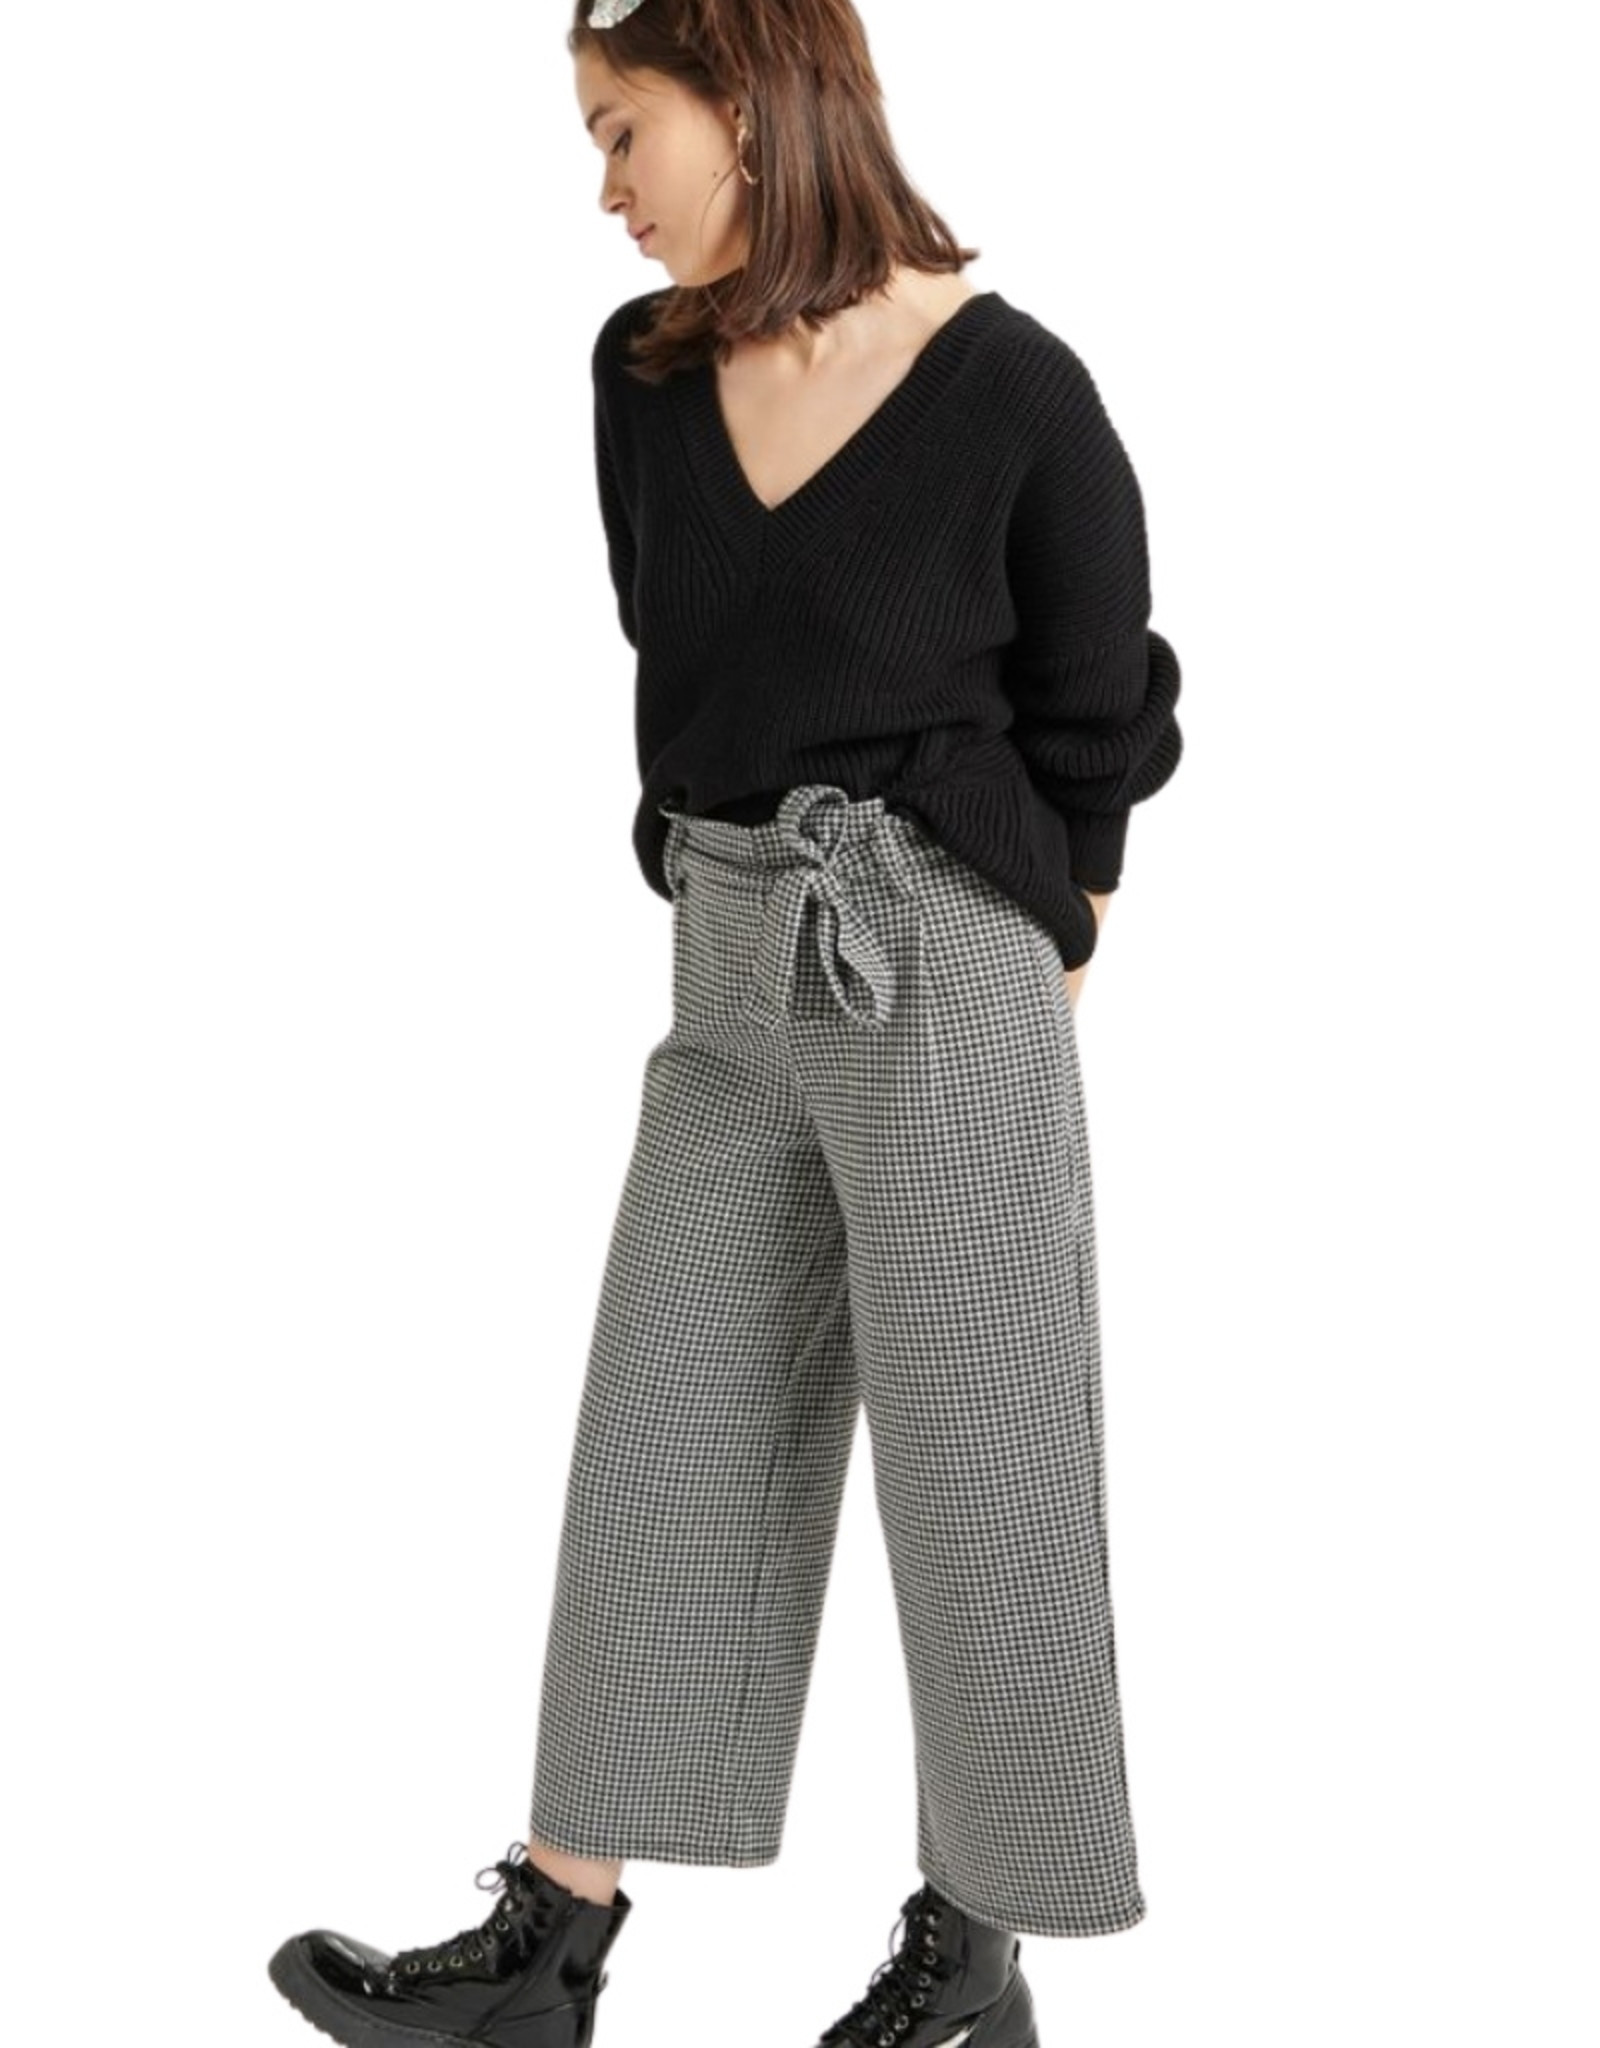 24Colours - Pantalon pied-de-poule (60491)